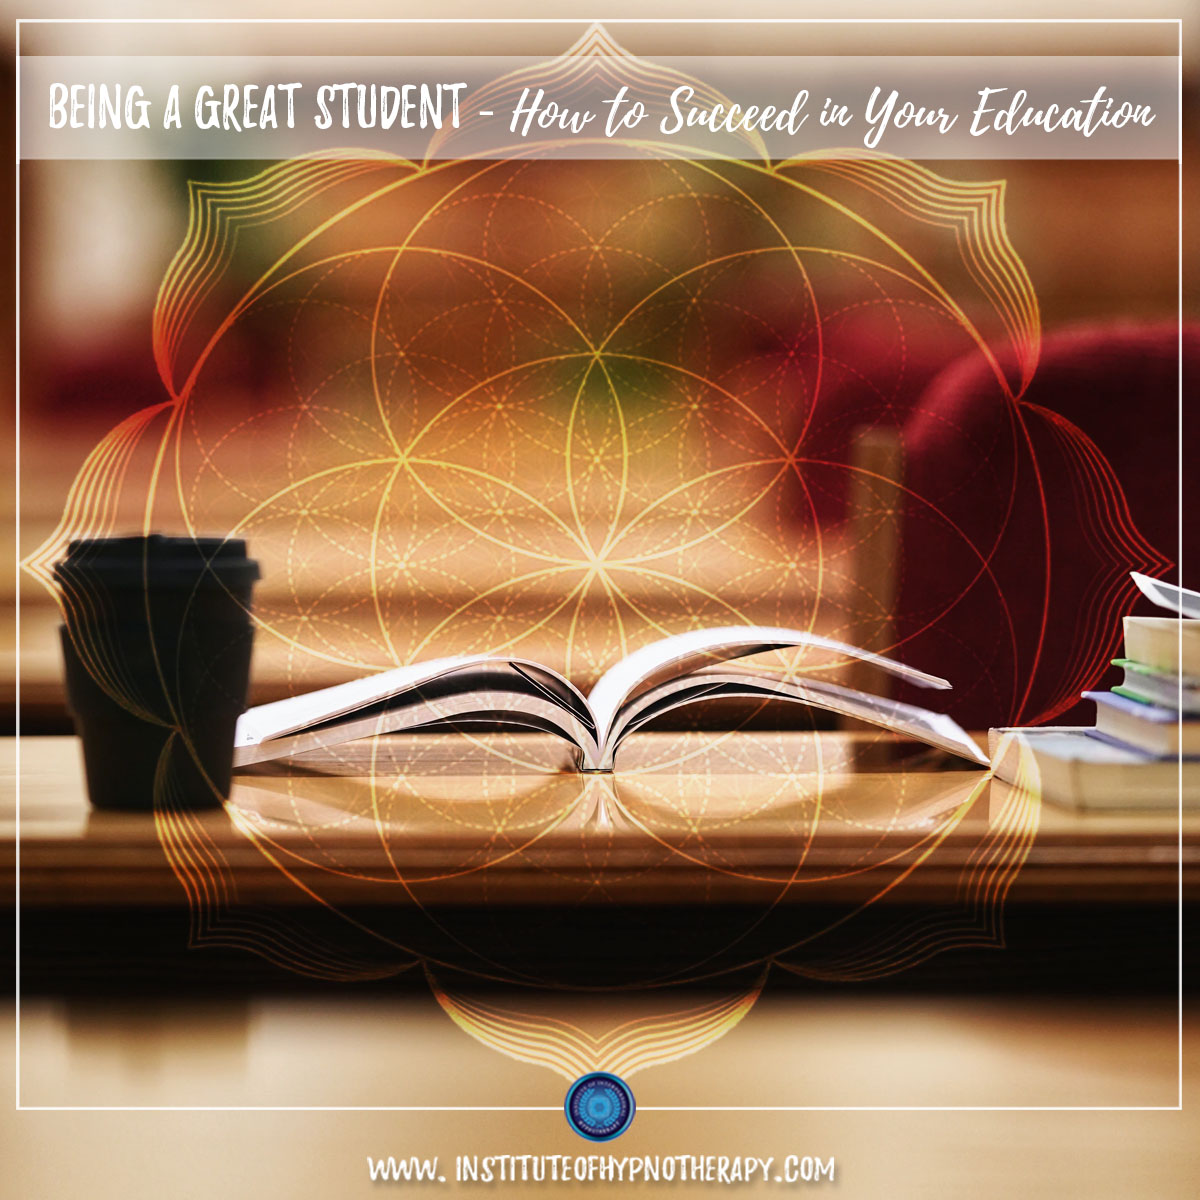 Hypnotherapy Training and how to become a great student and be successful in your education